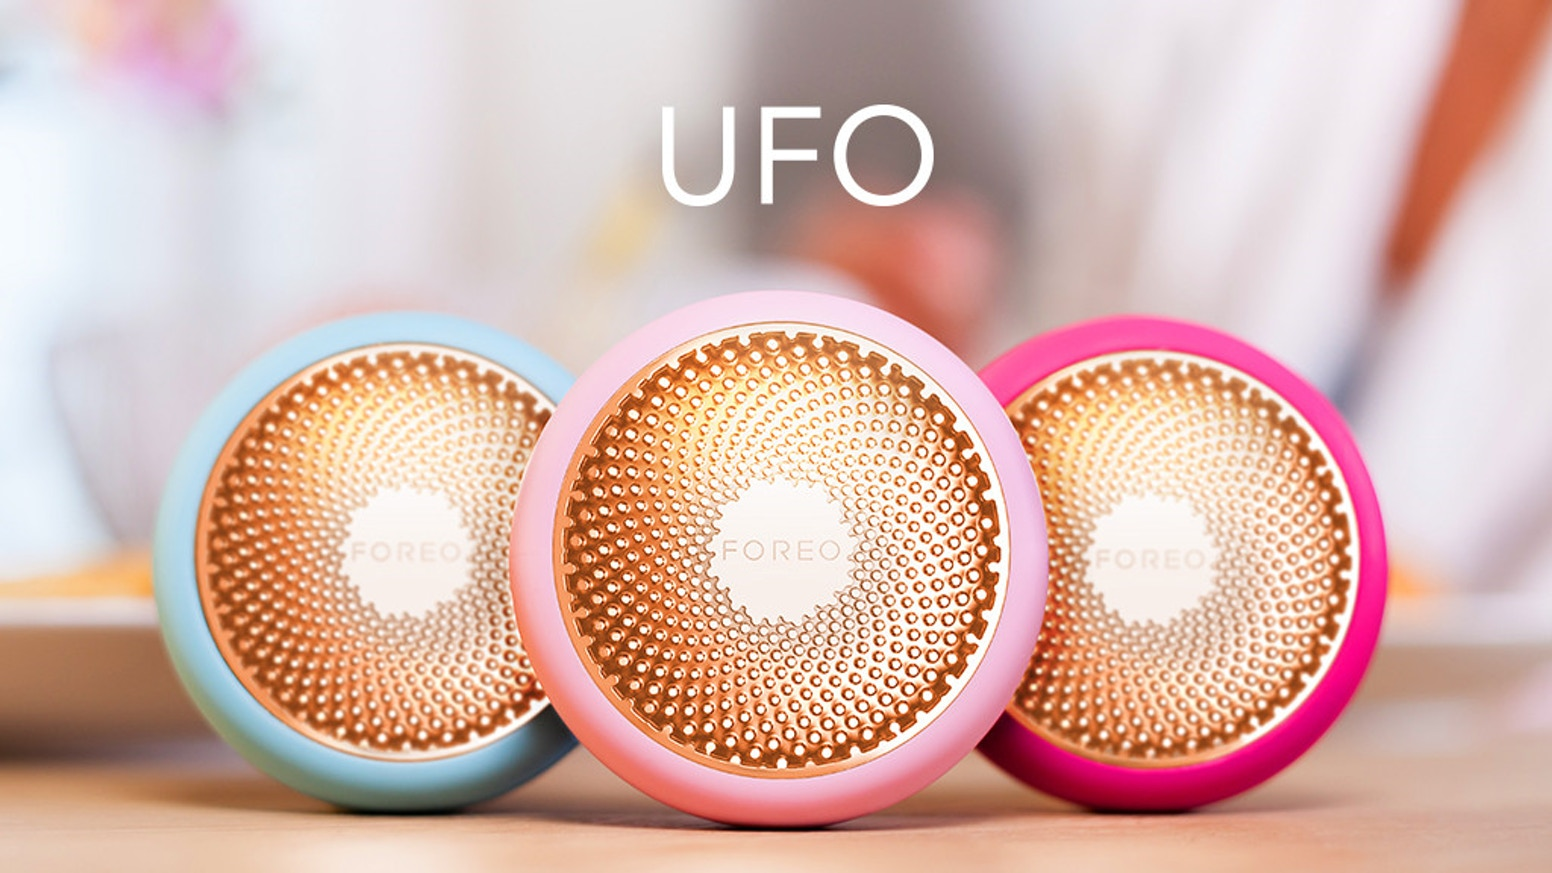 FOREO UFO: Beauty Tech Revolutionizes Face Masks in 90 Sec! by